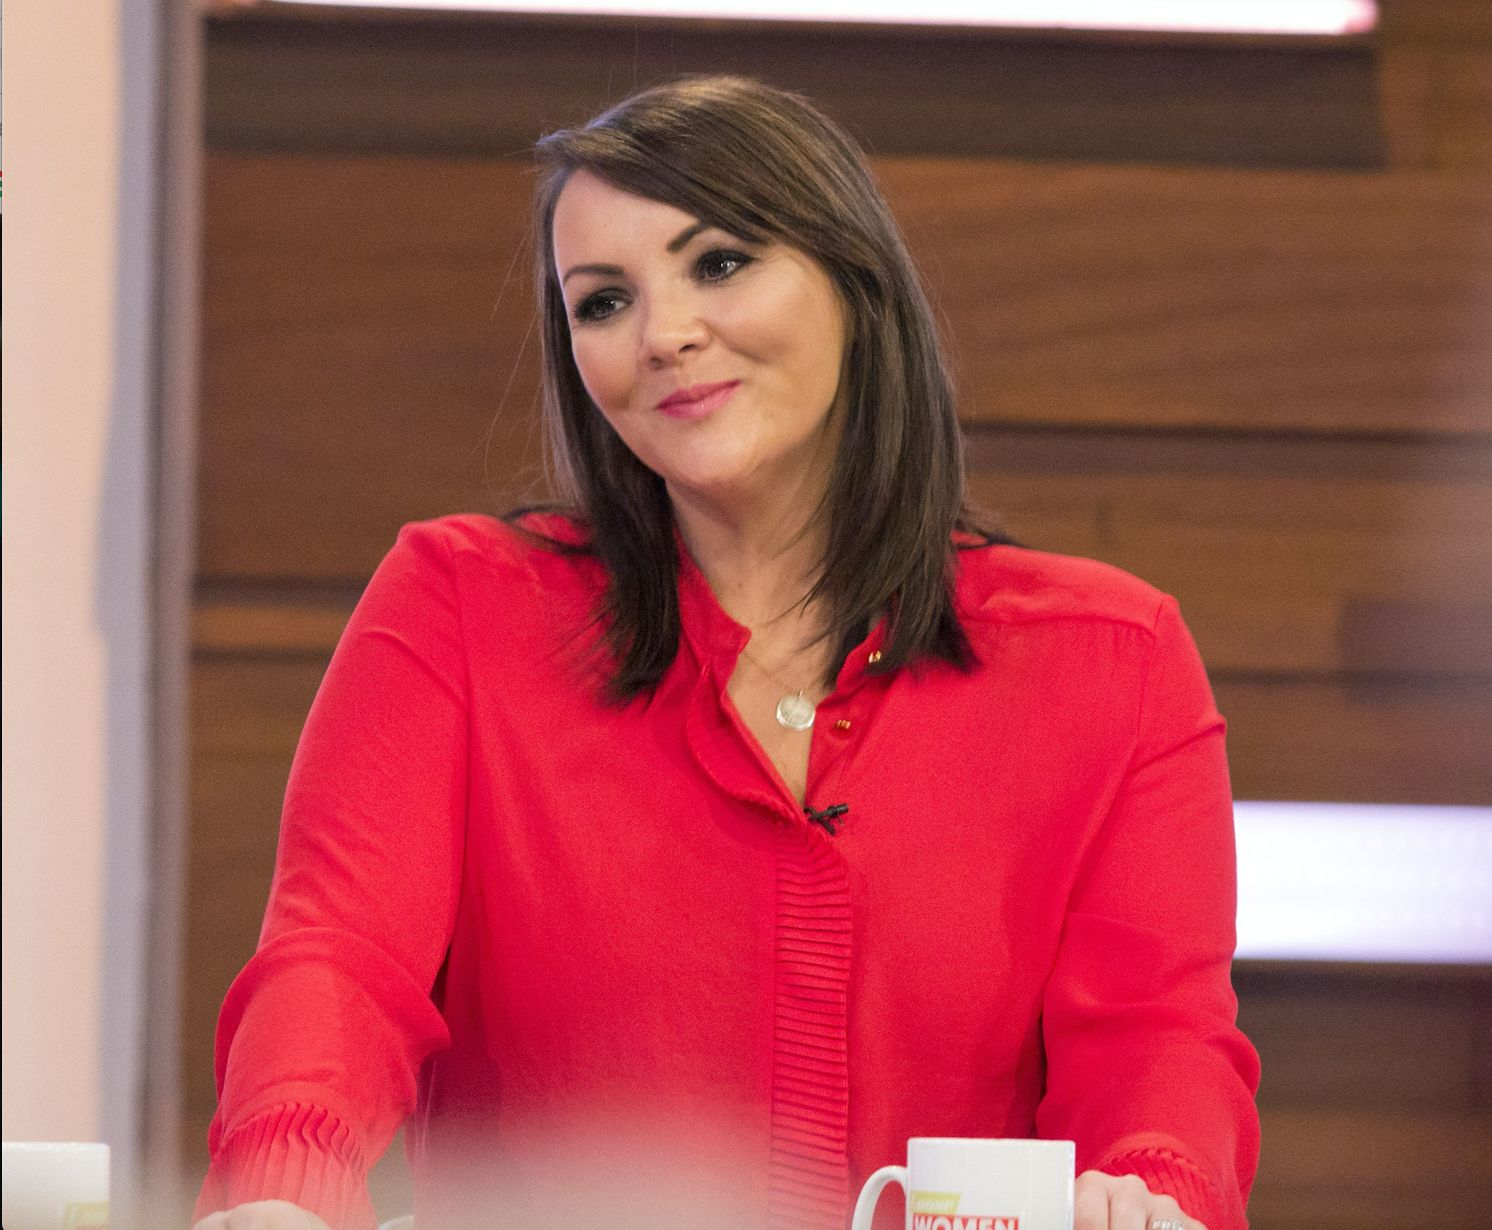 Martine McCutcheon Opens Up About Multiple Miscarriages On 'Loose